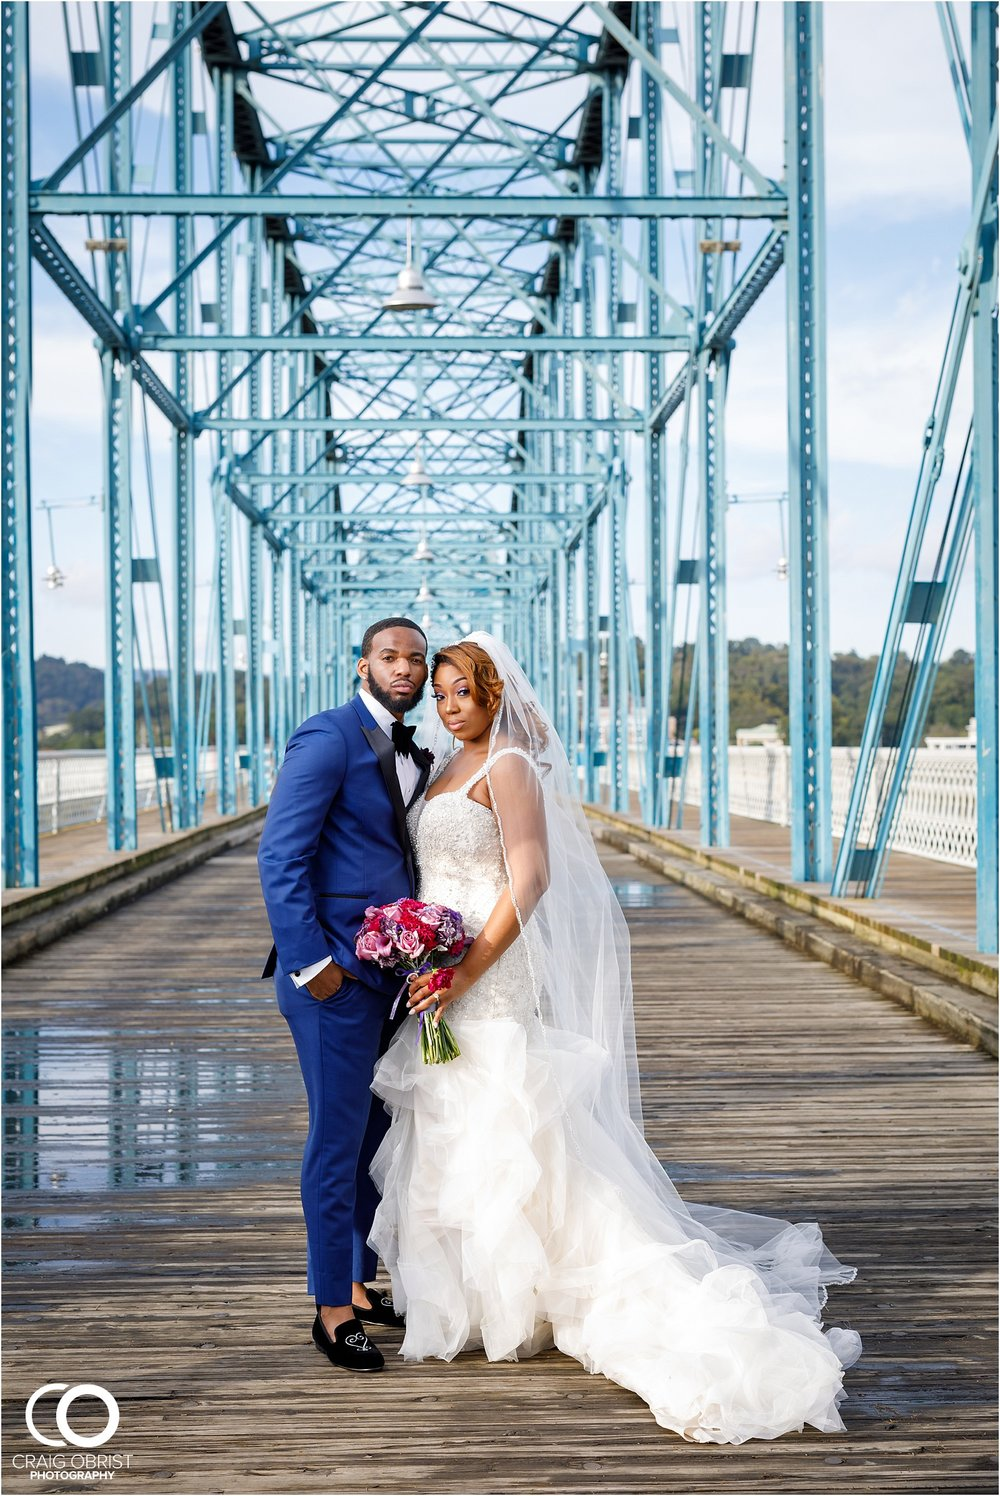 Stratton Hall Chattanooga Walnut Street Bridge Wedding Portraits_0038.jpg